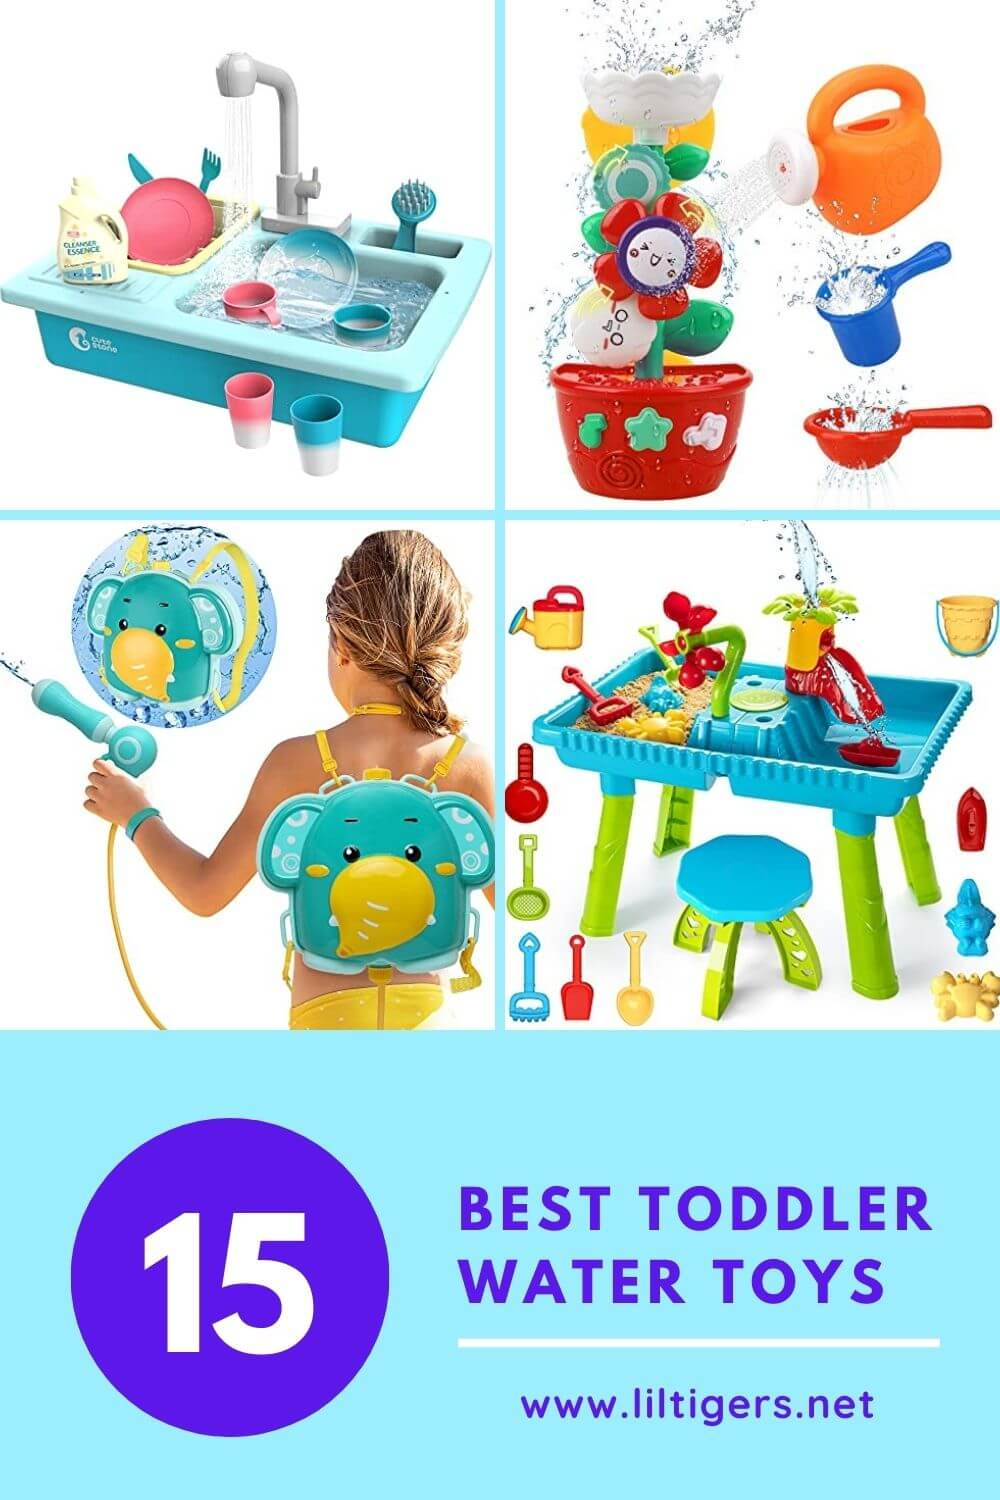 Best Toddler Water Toys